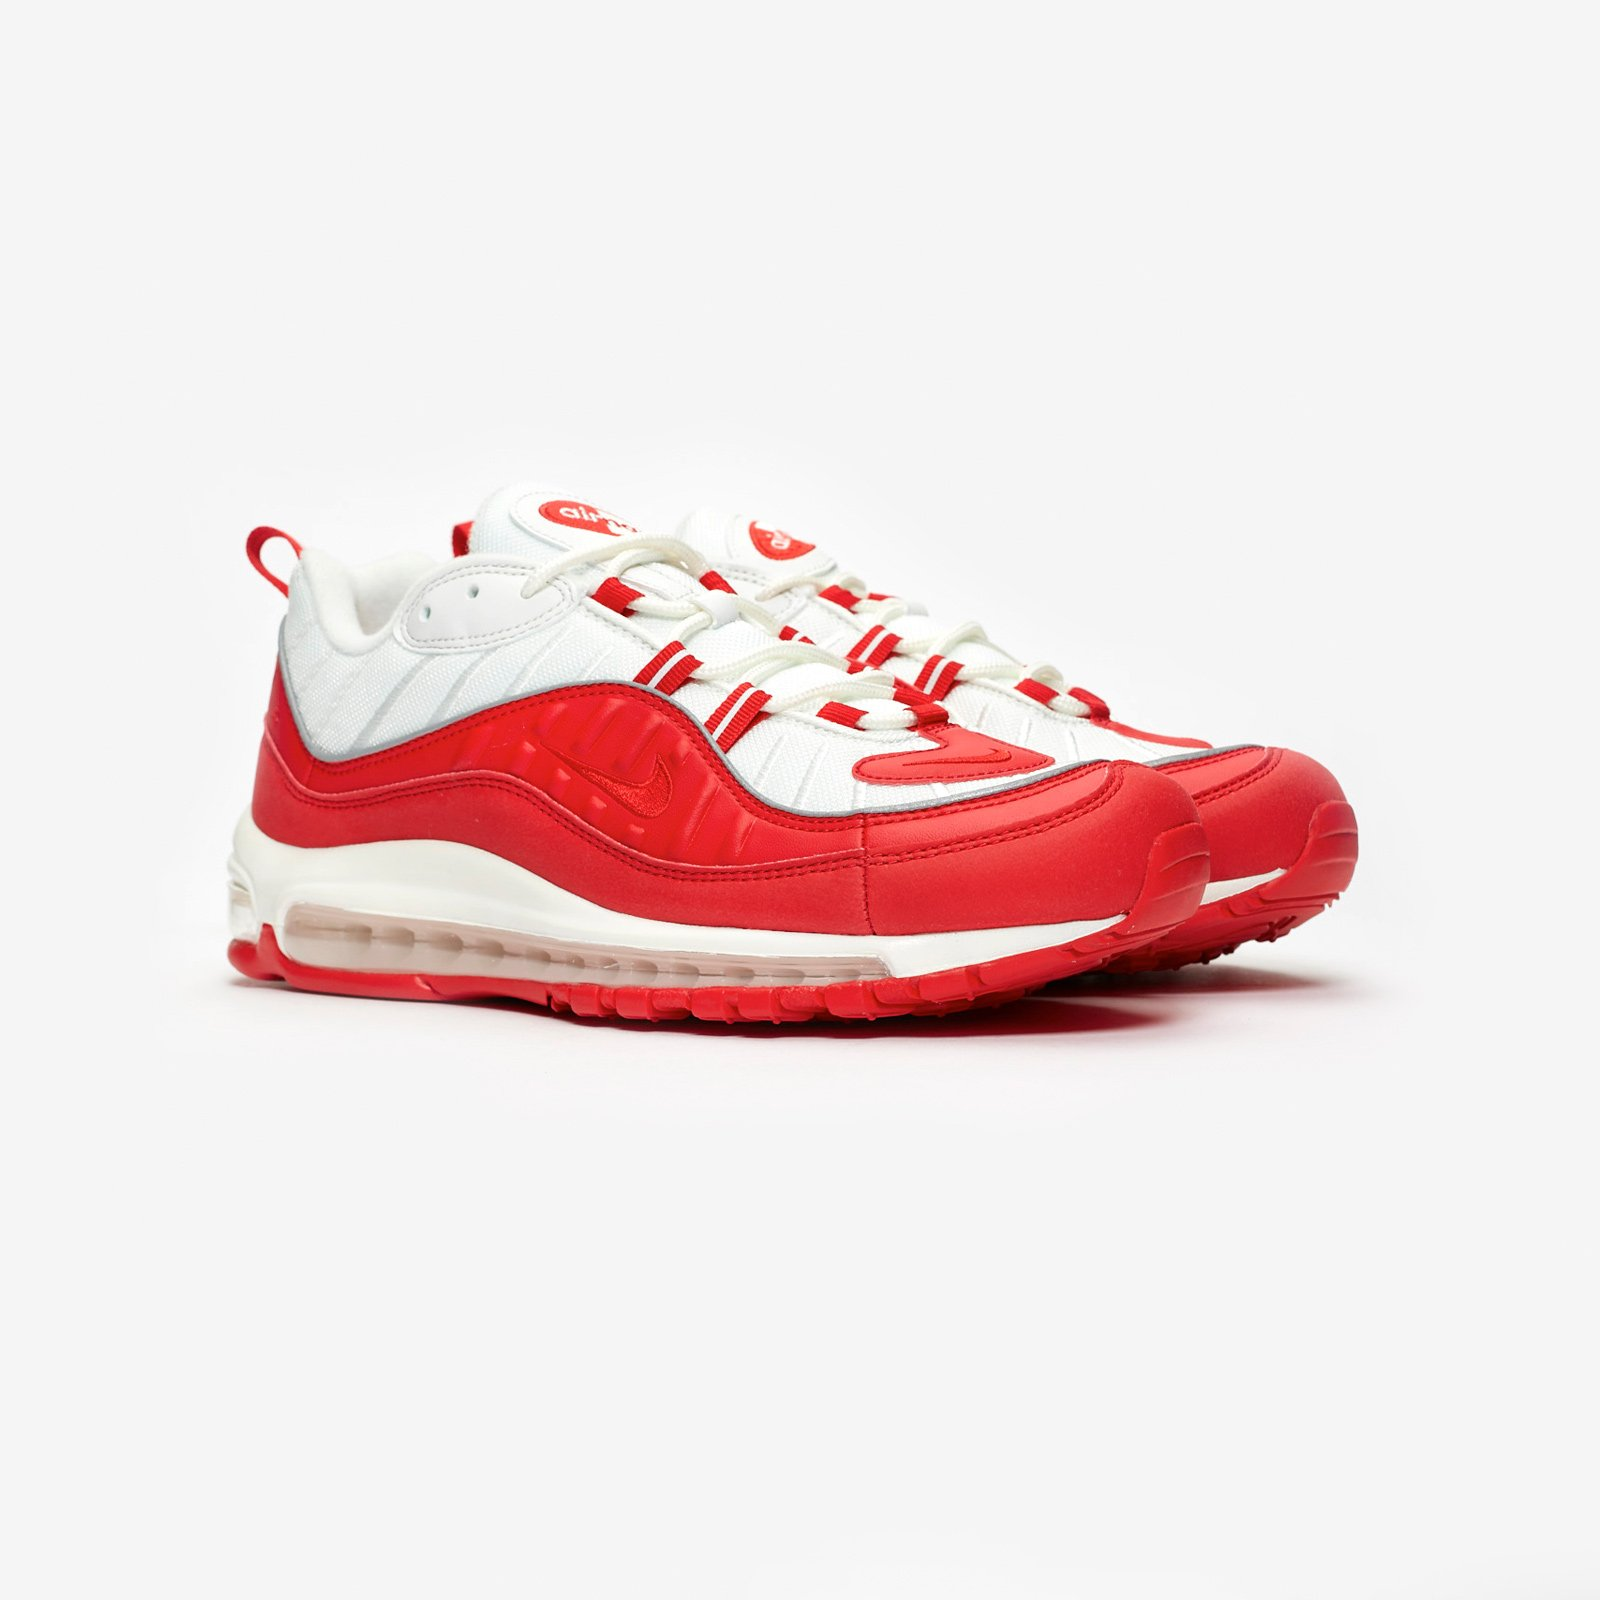 finest selection fcbca 250f7 Nike Air Max 98 - 640744-602 - Sneakersnstuff  sneakers ...